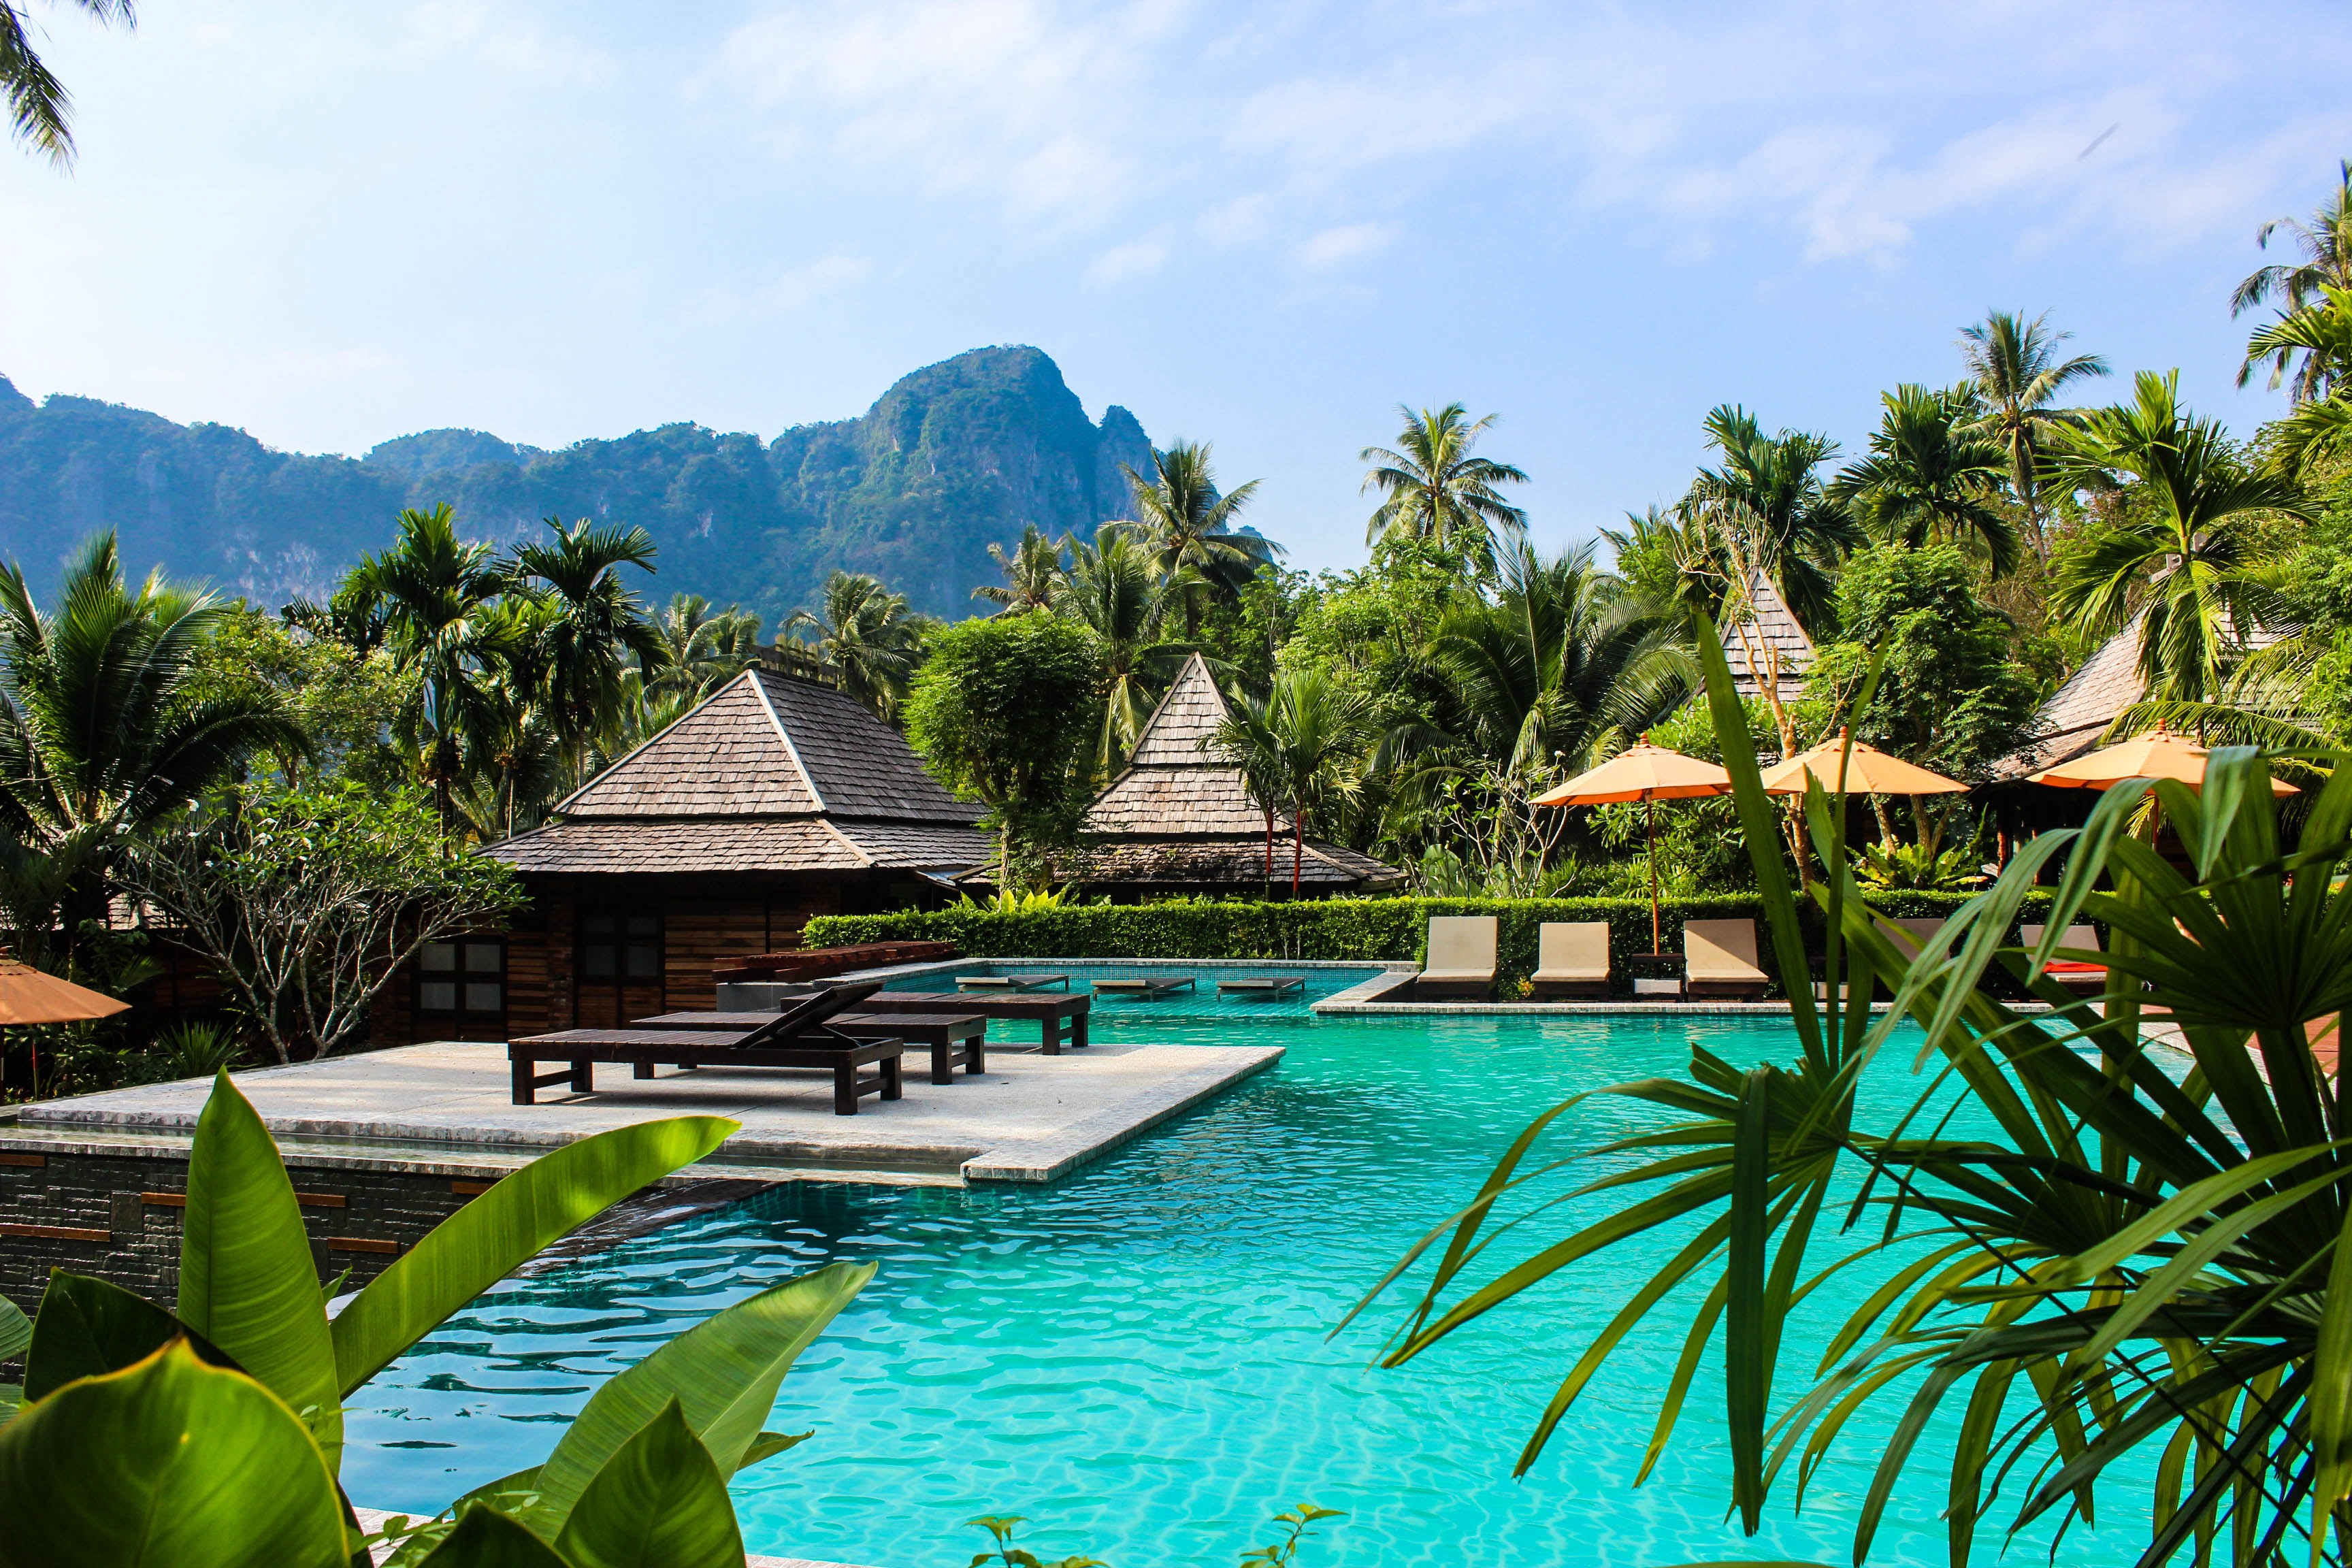 A beautiful, relaxing hotel scene in a lush jungle. Bungalows sit over turquoise water with mountain peaks in the distance.